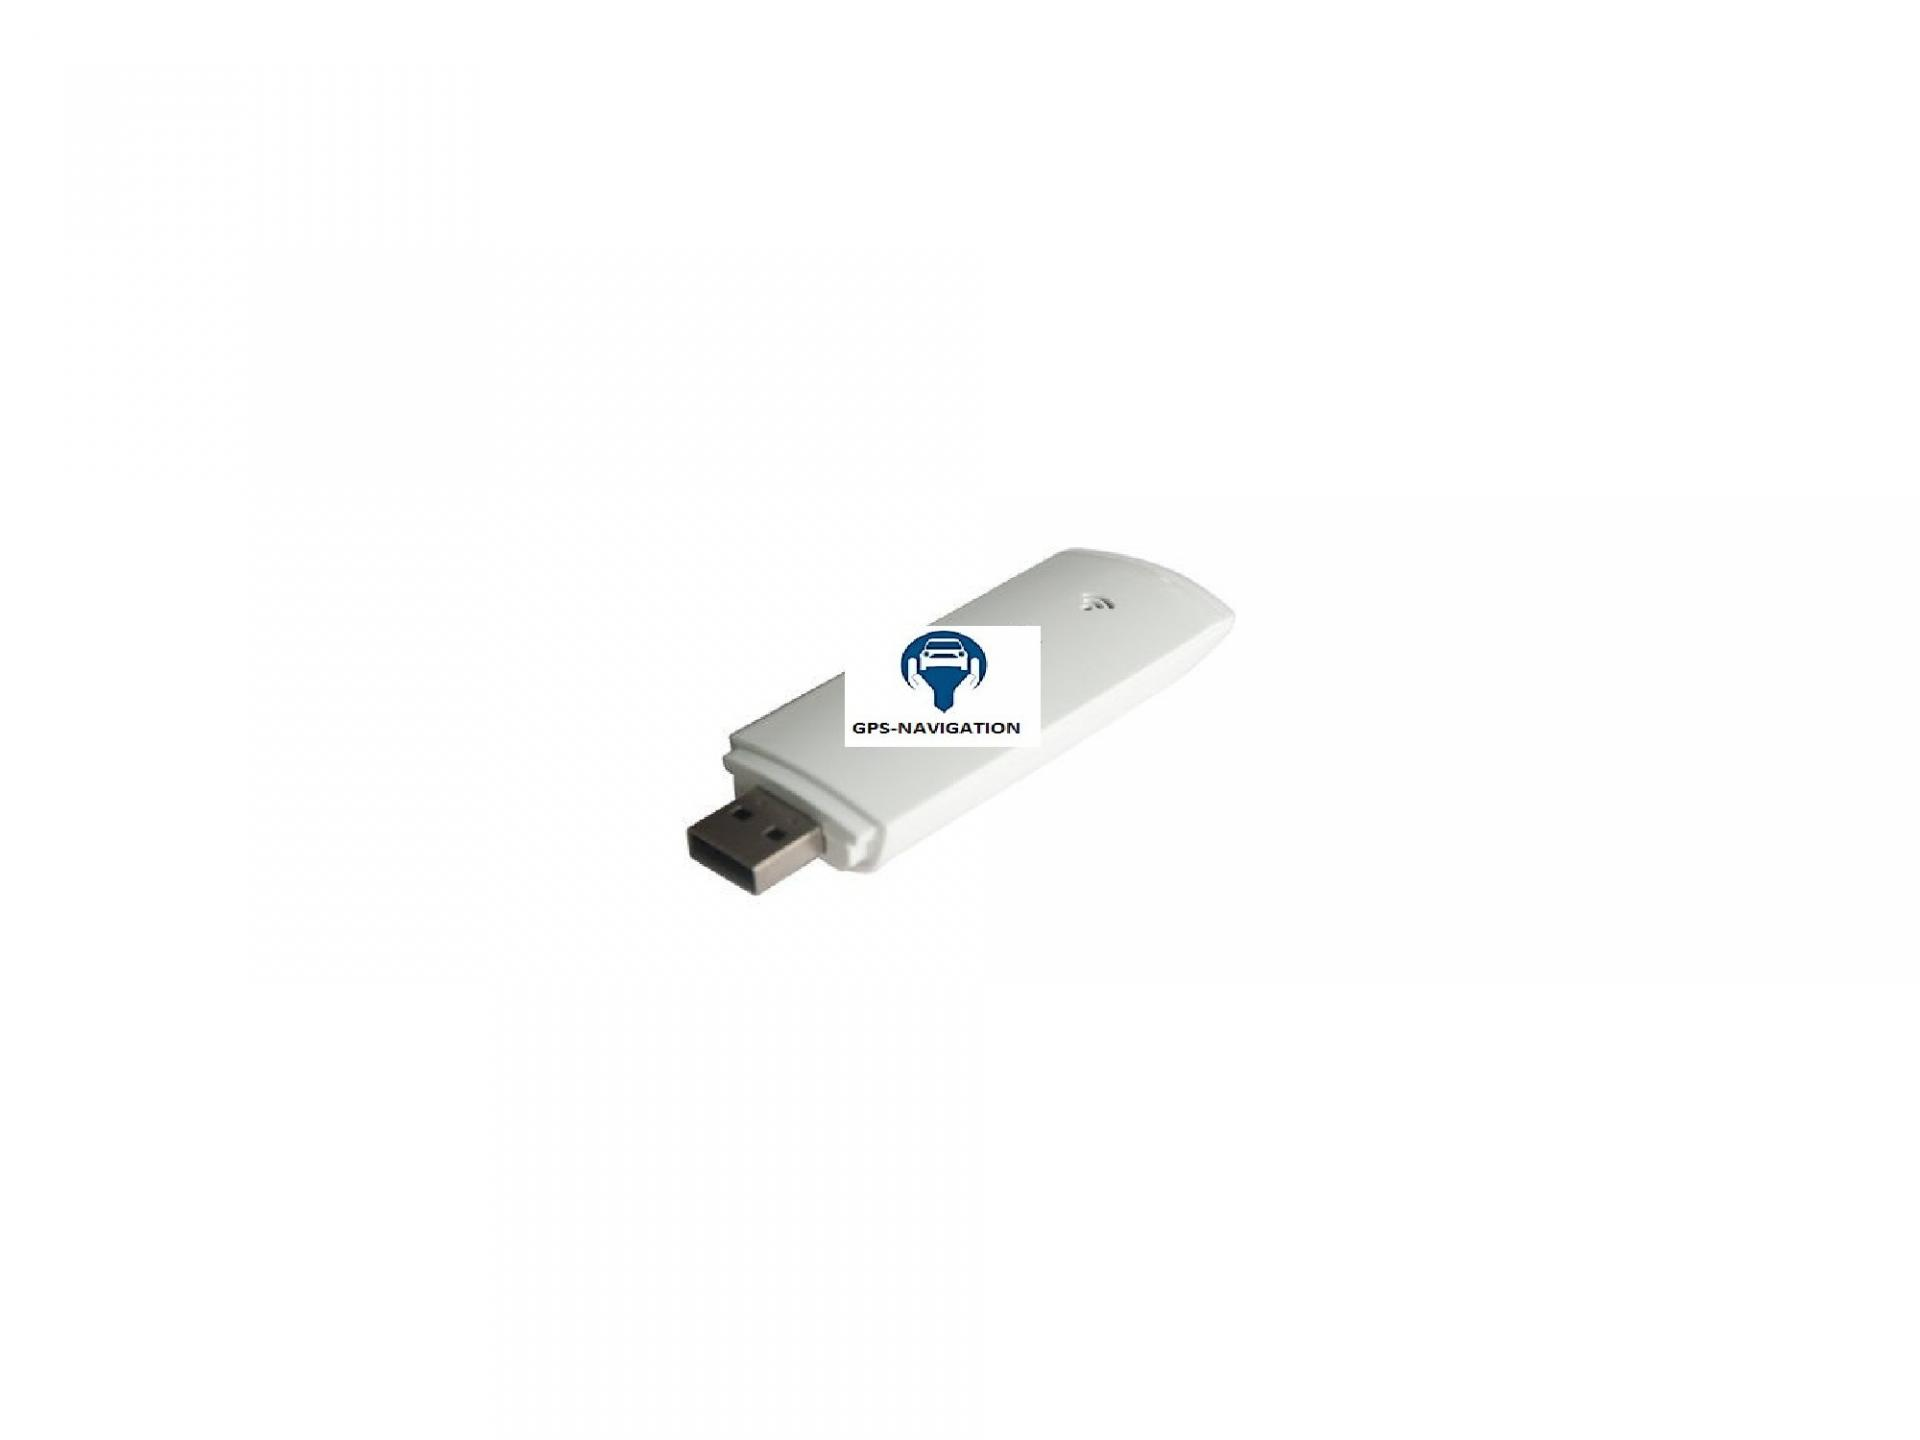 Cle 3g usb modem sd android win ce 1